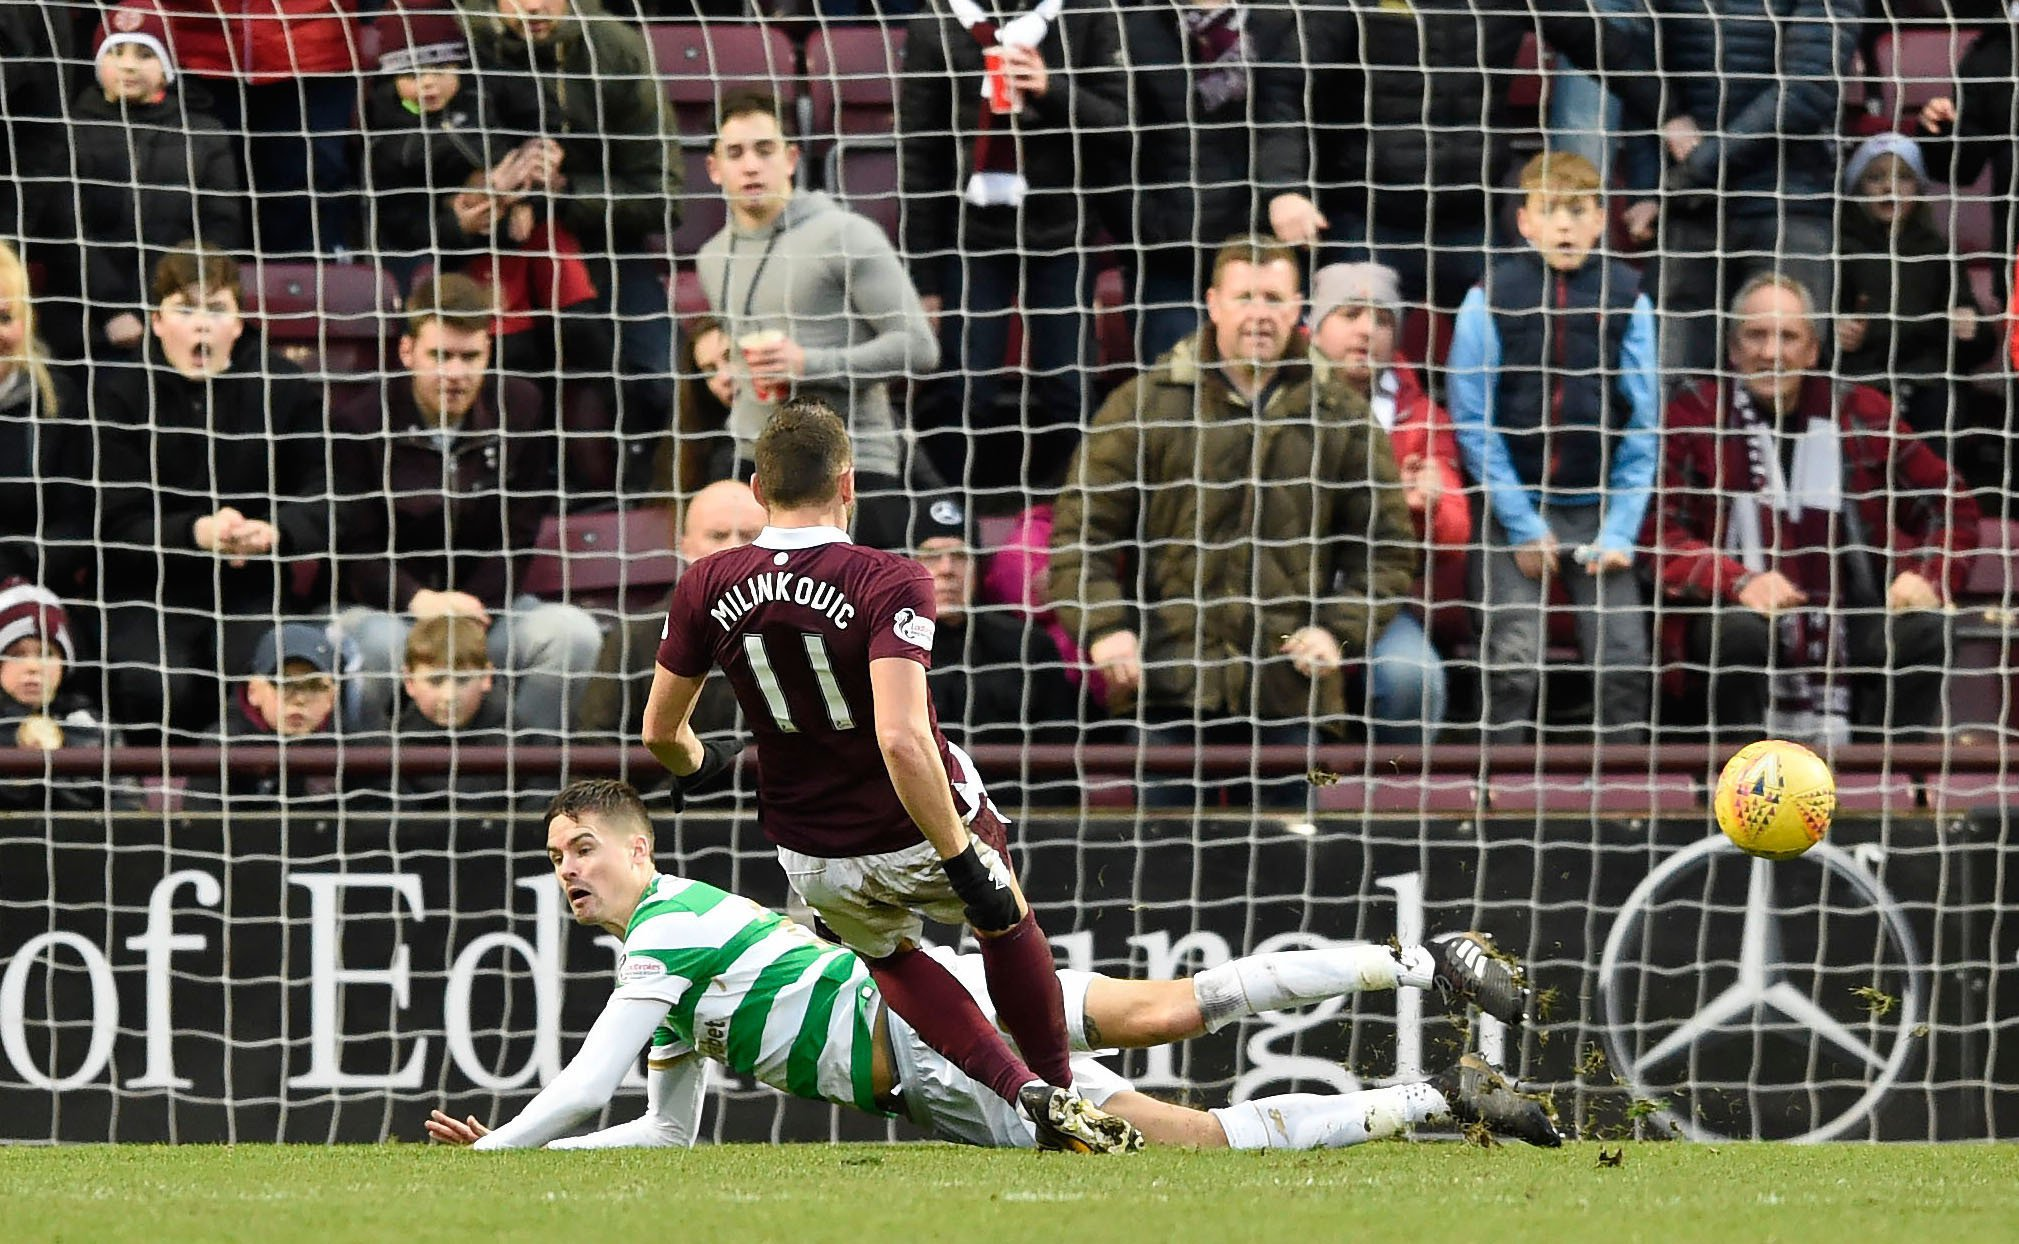 Celtic's incredible unbeaten run ended in spectacular fashion by Hearts